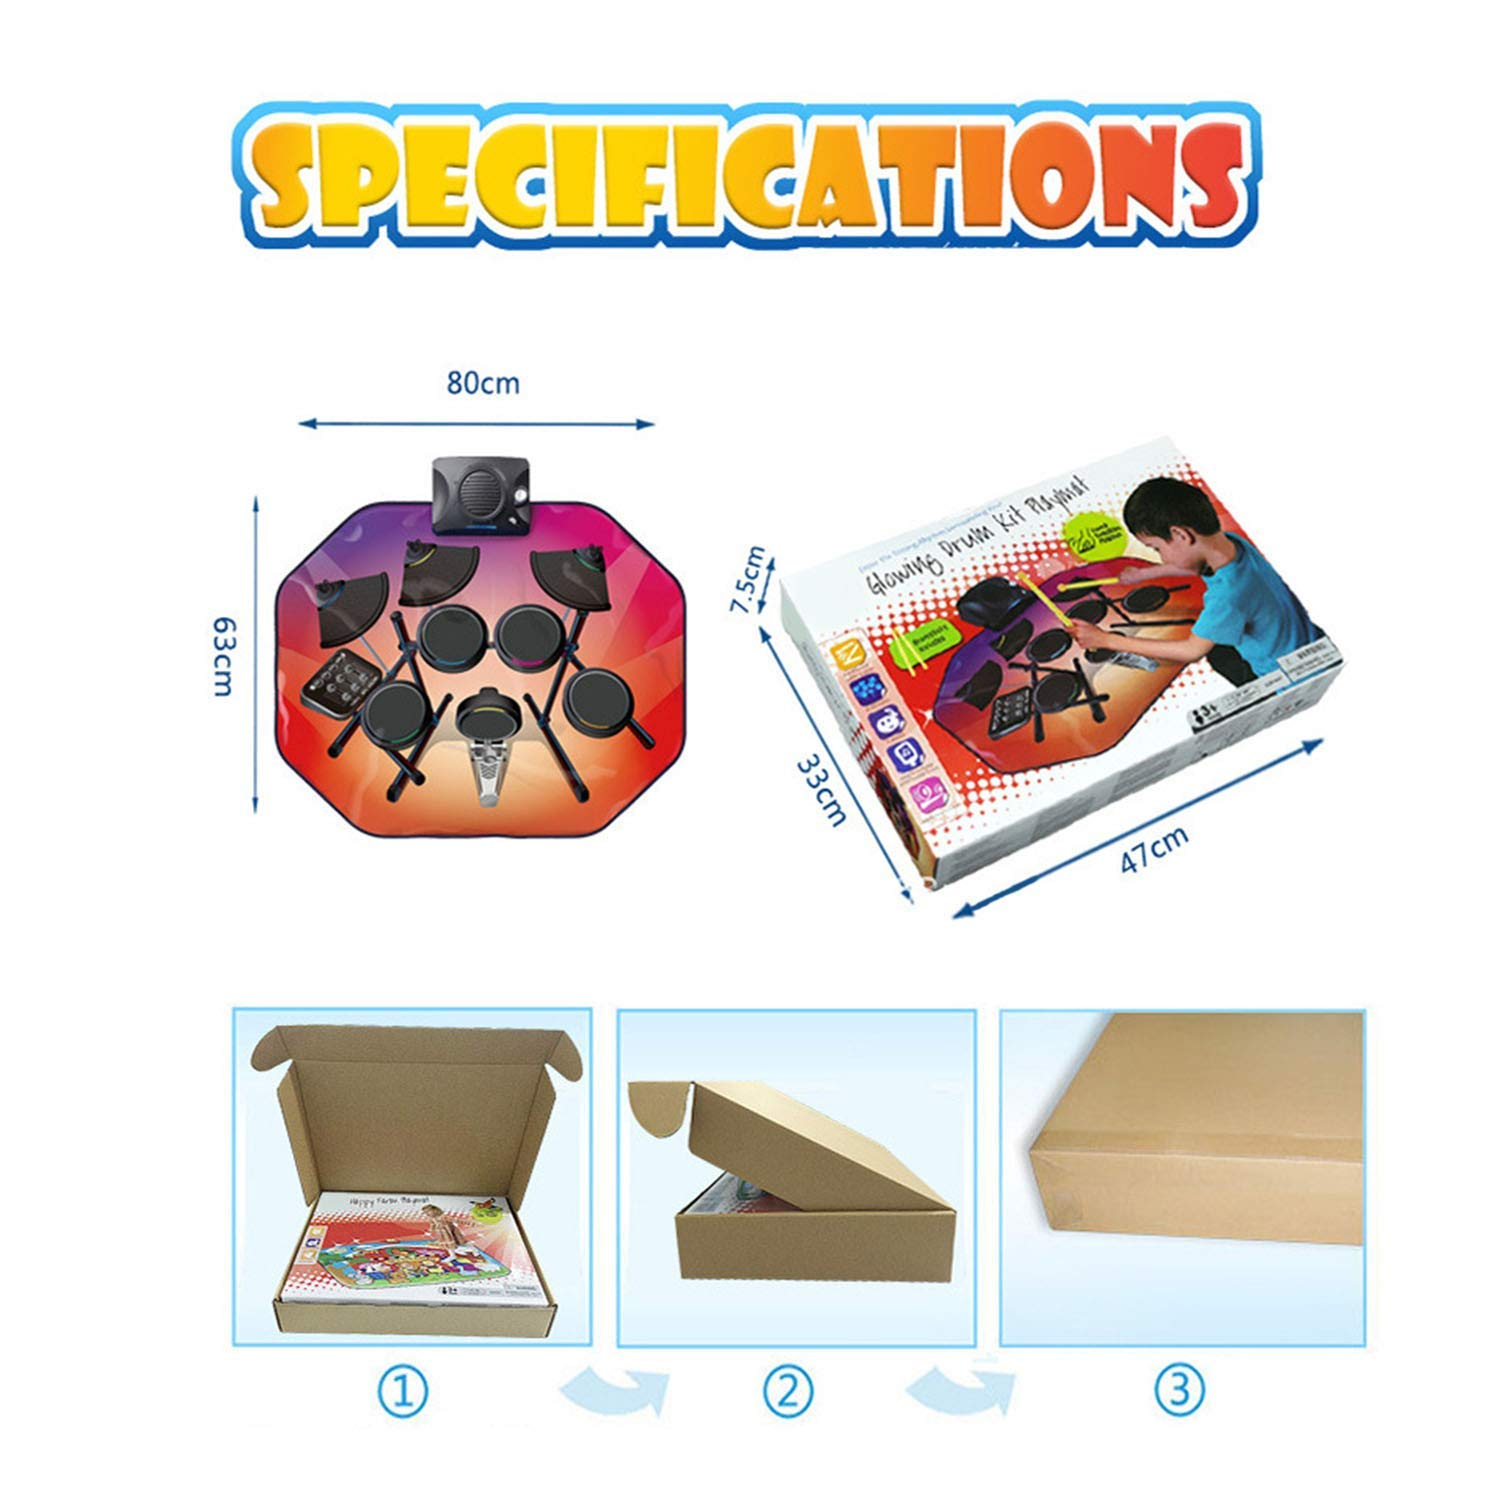 Drum Music Blanket, Jazz Drum Game Pad, Carpet Dance Mat, with Built in Music Tracks, 5 Music, Recording Function, Can Connect to Mobile Phone by ankt777 (Image #5)